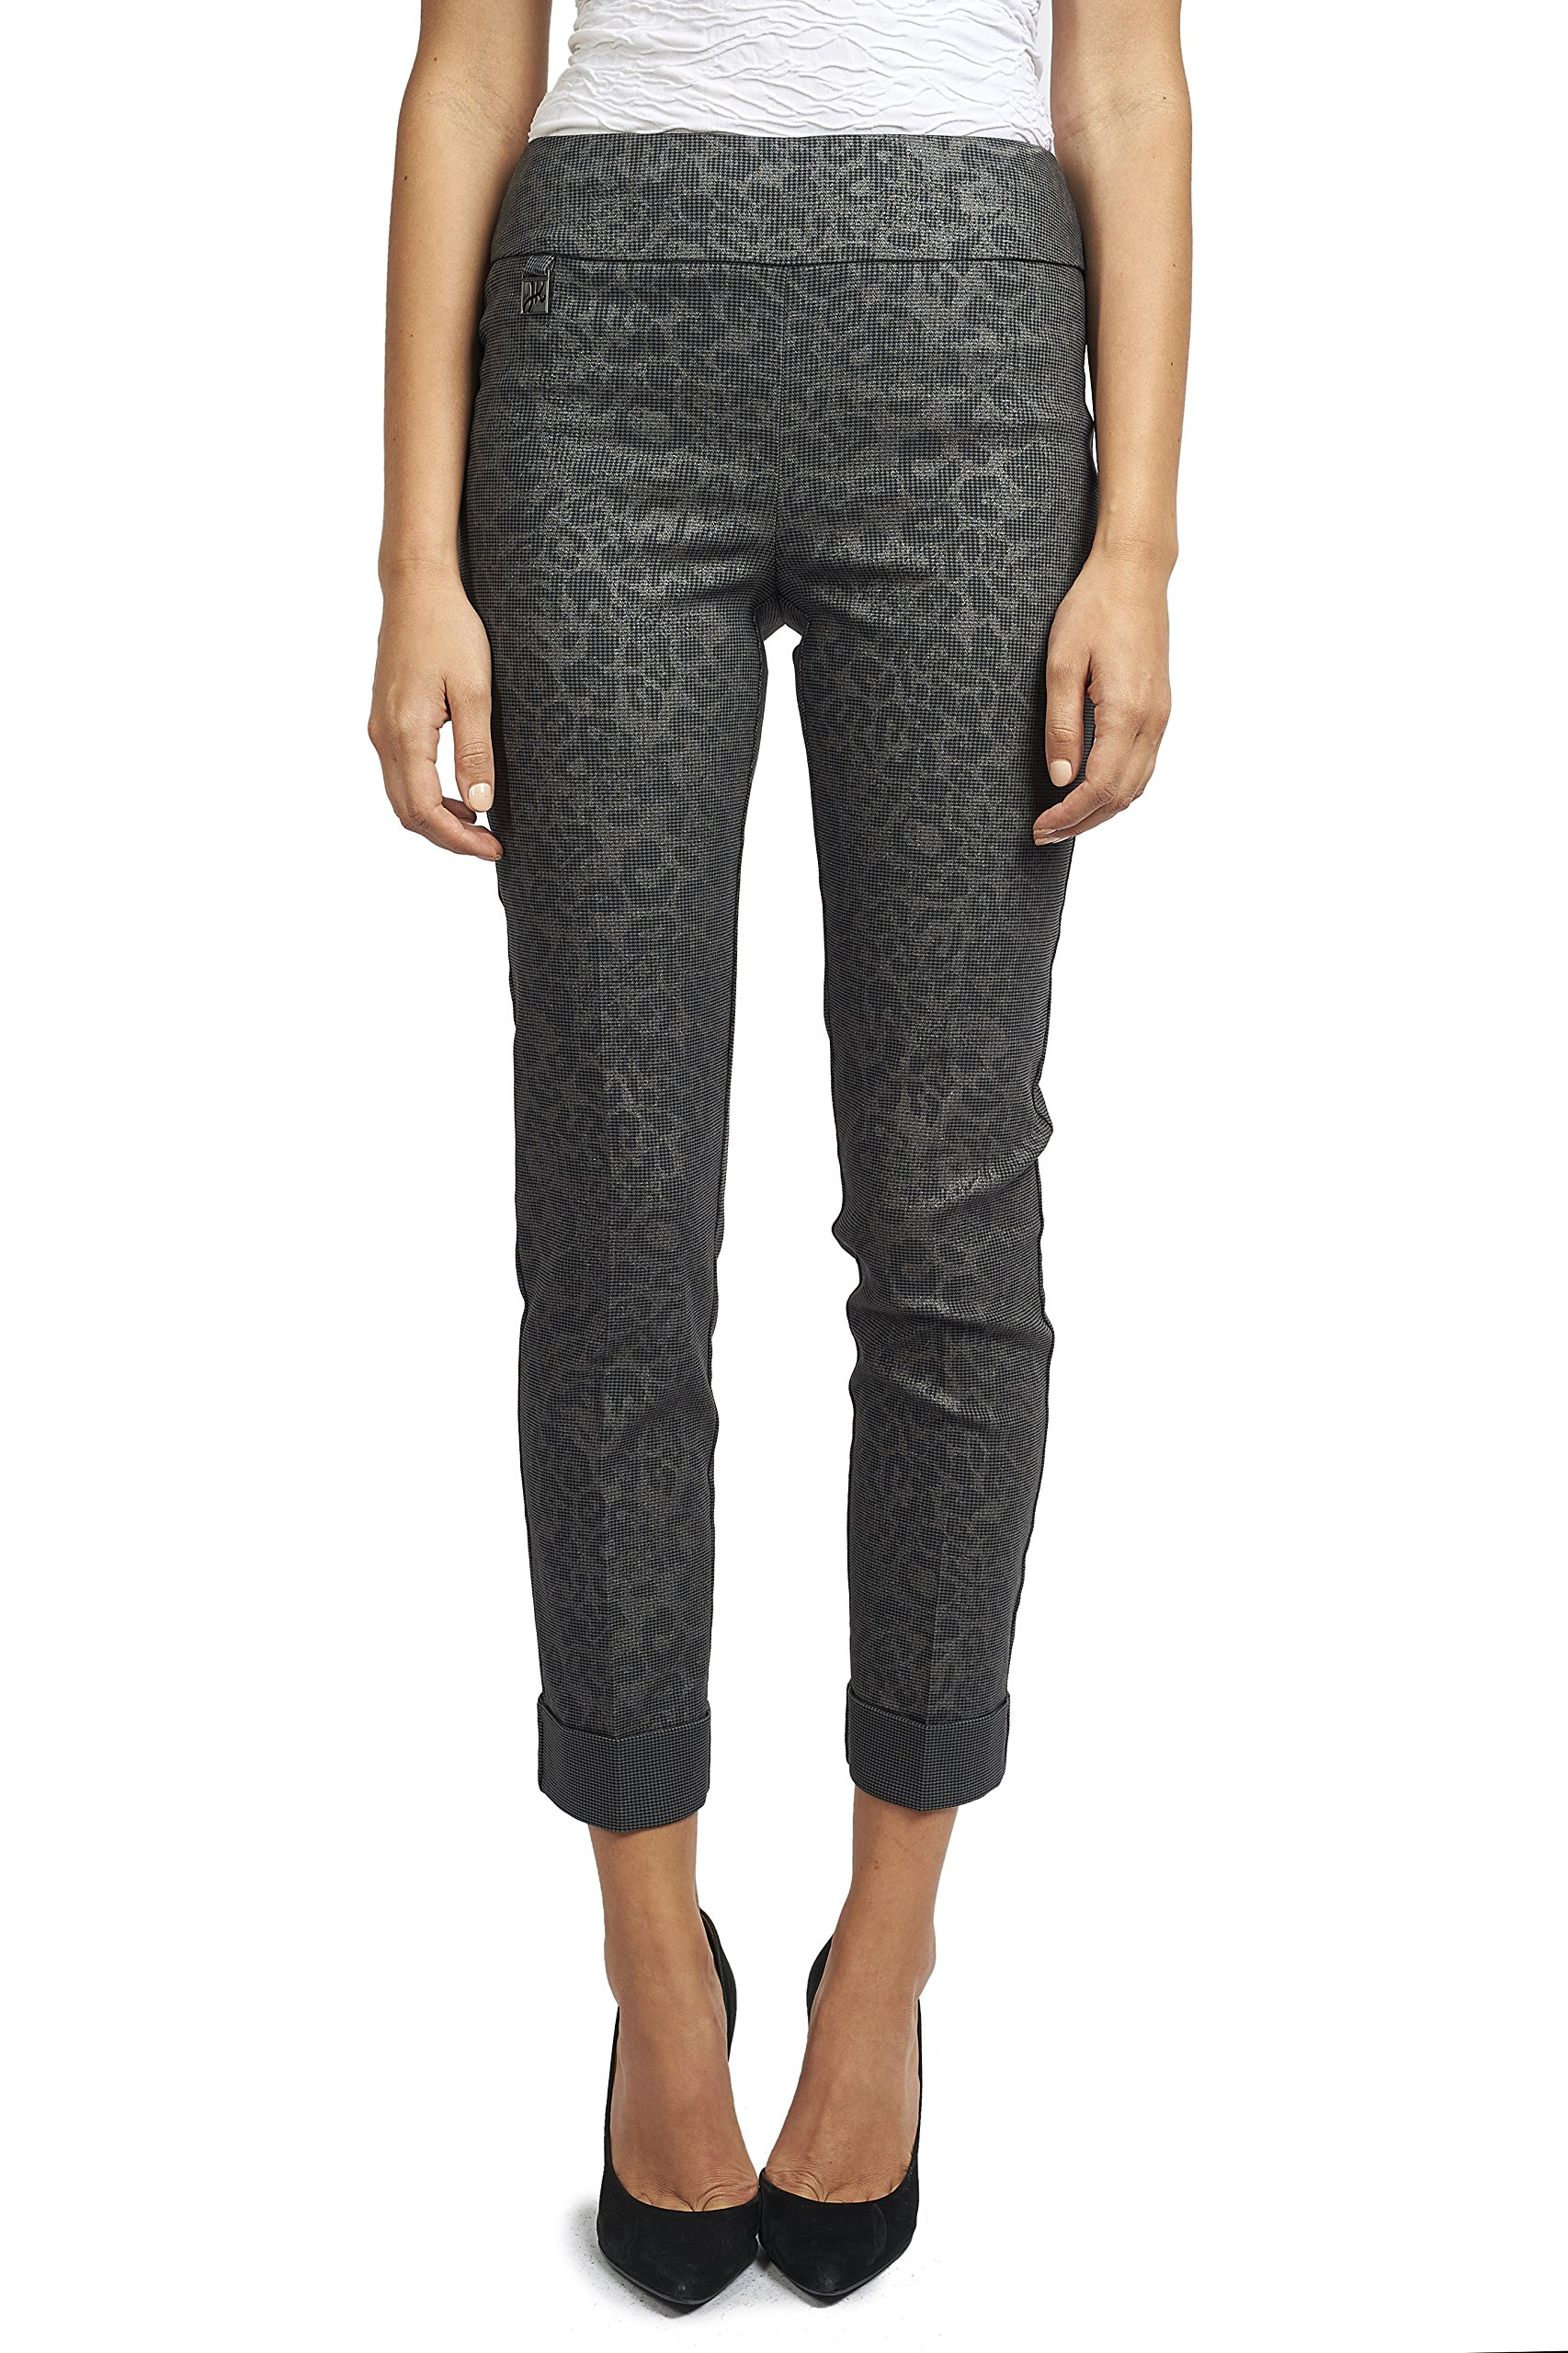 Joseph Ribkoff Printed Twill Ankle Length Pant Style 173589 - Size 6 by Joseph Ribkoff